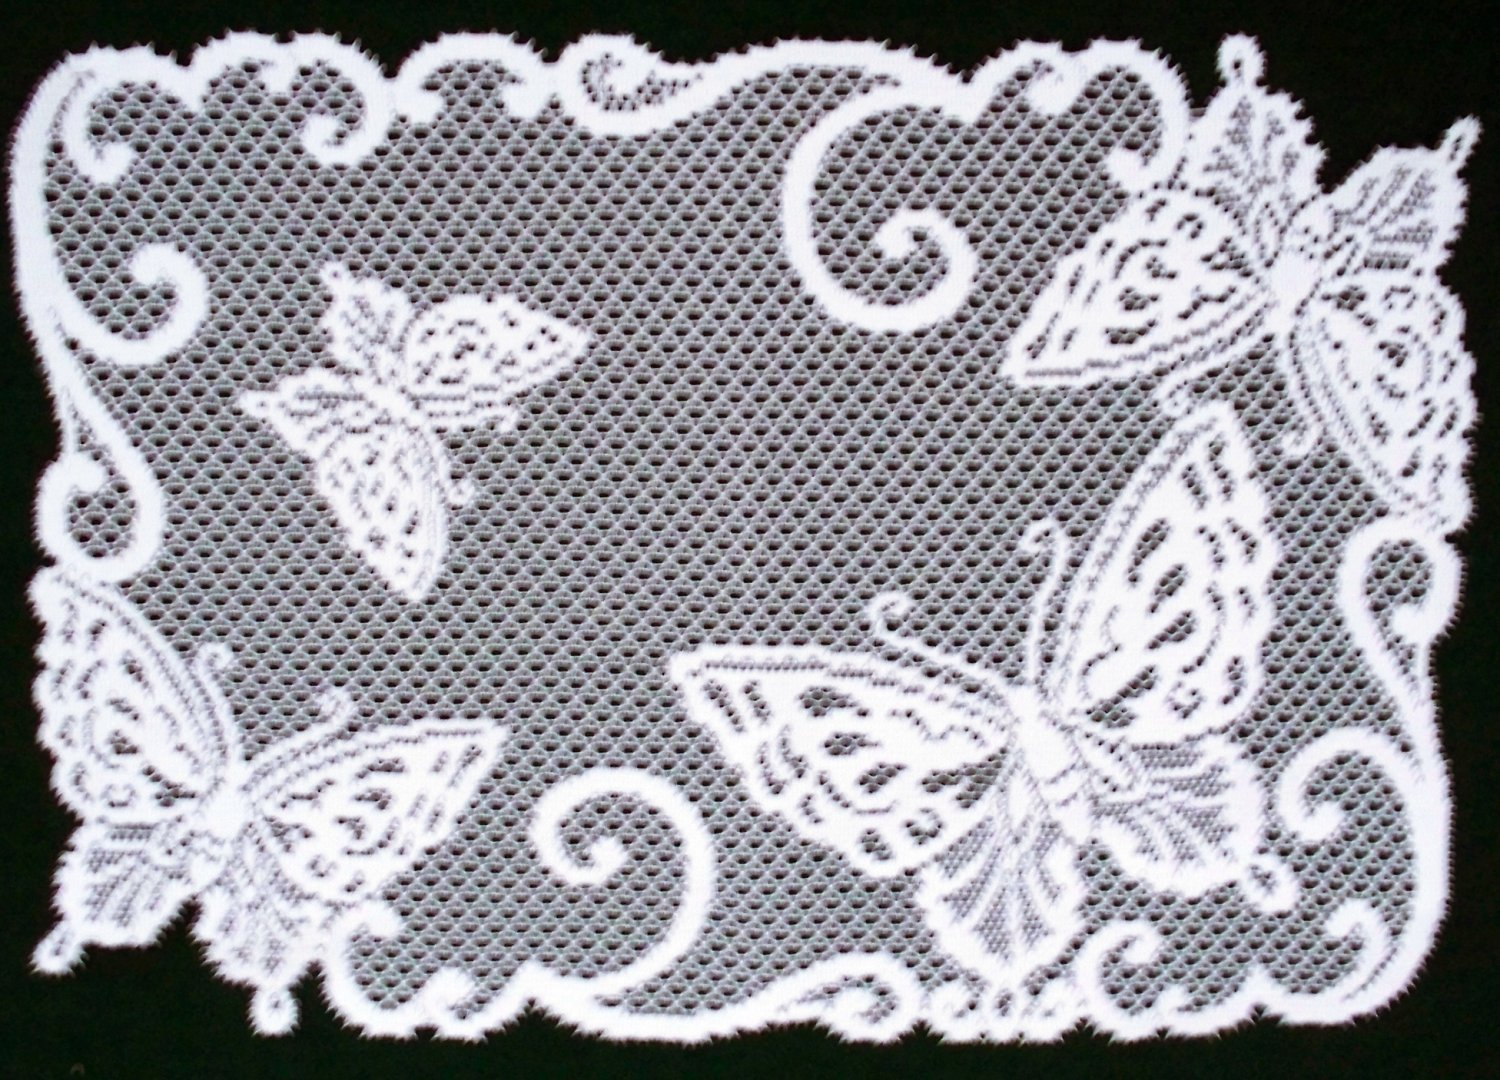 Butterflies Placemat 14 x 20 White Heritage Lace Set Of (4)